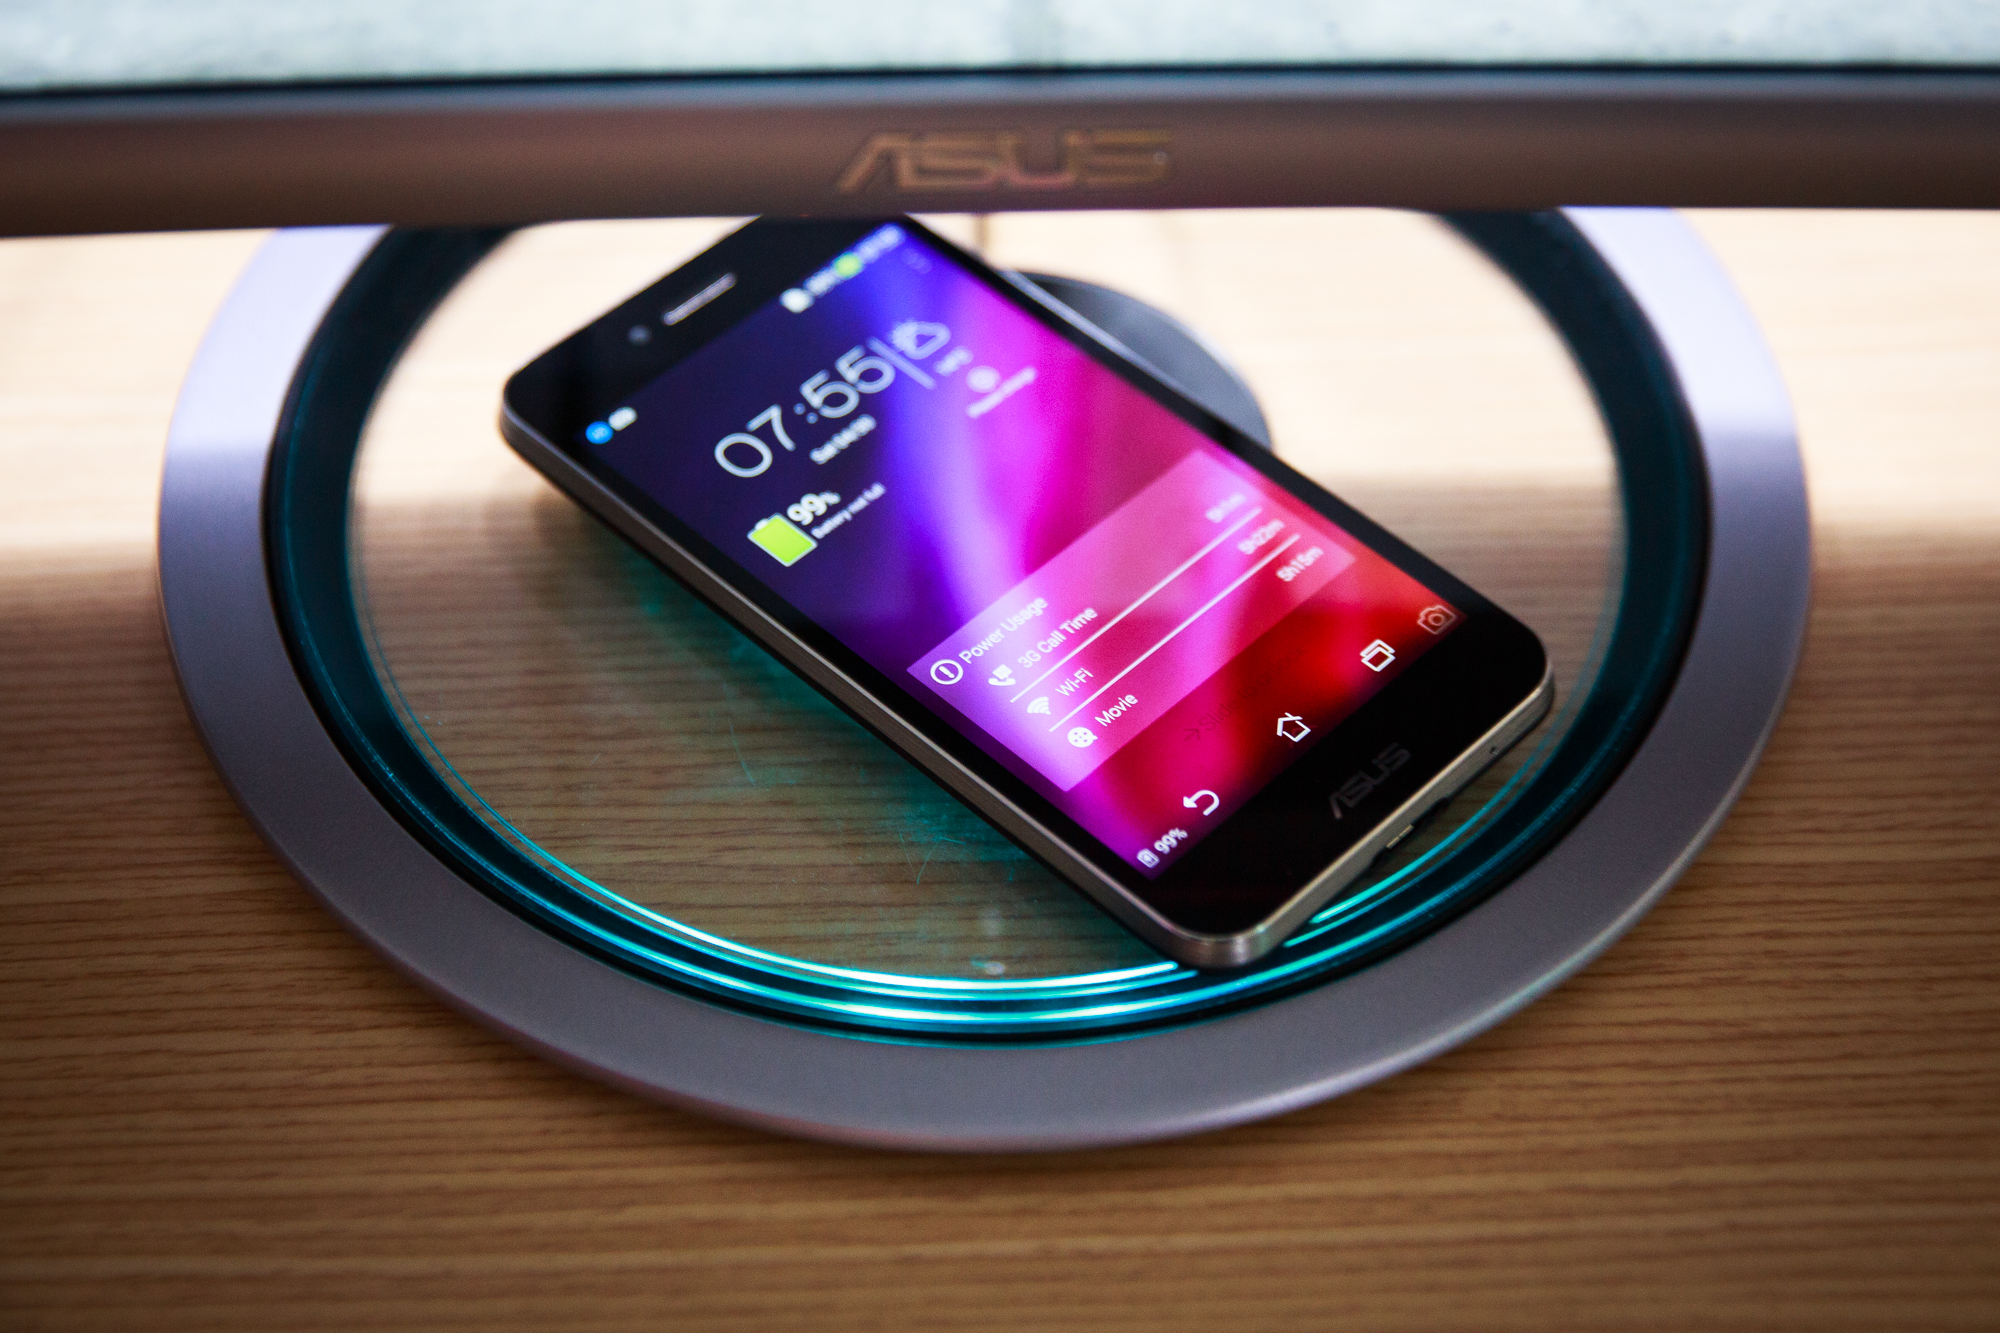 asus-products-3965-001.jpg